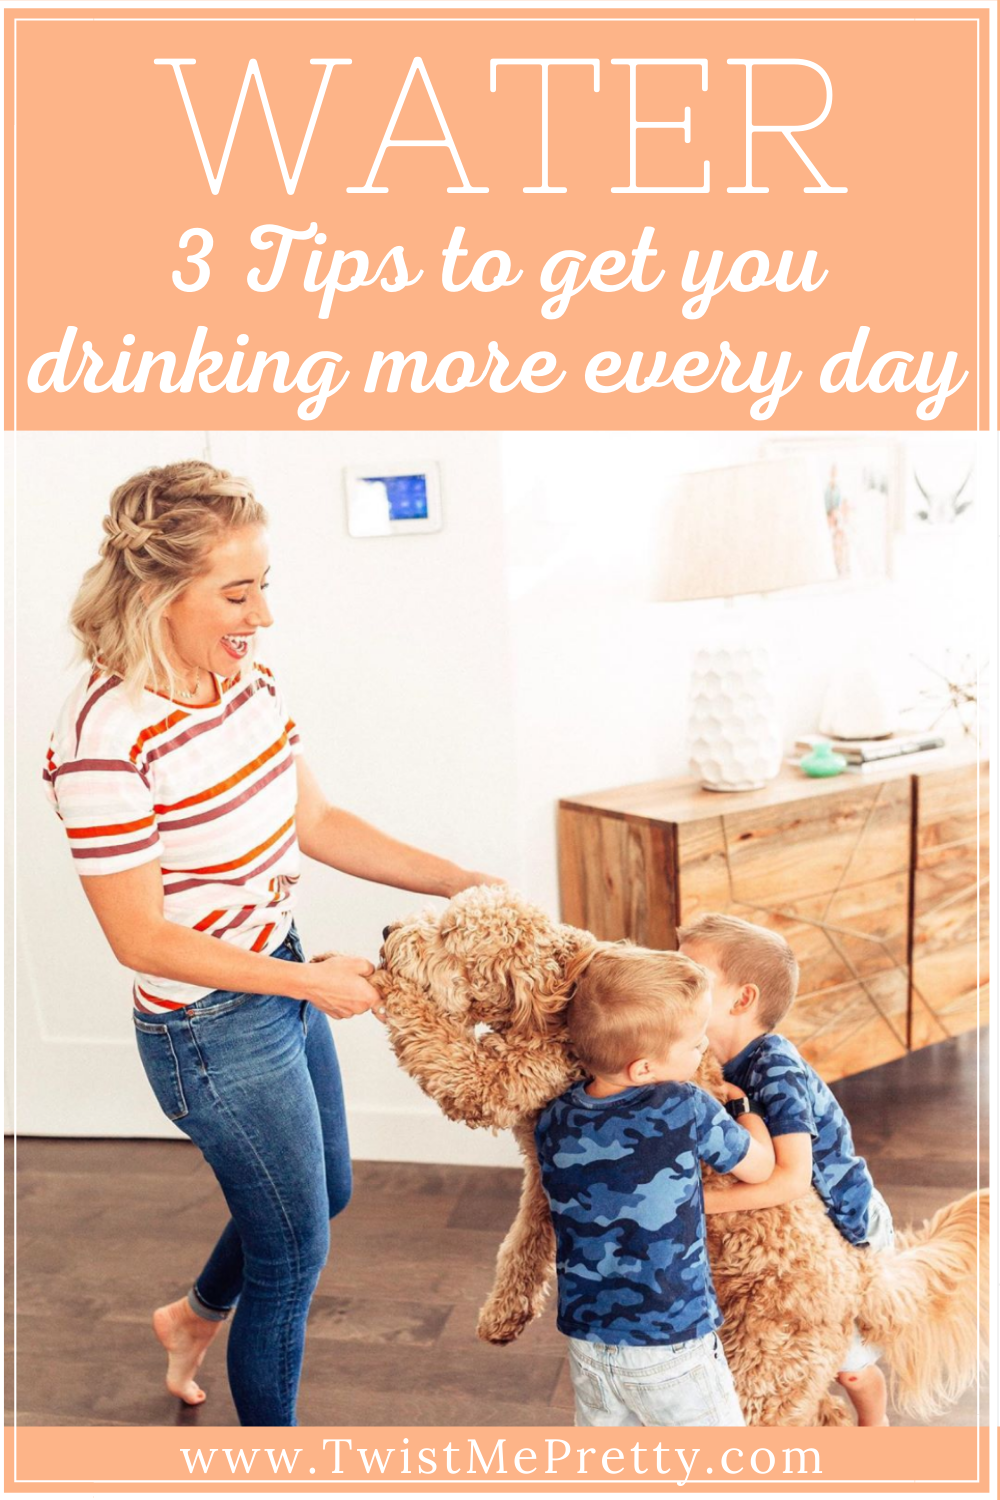 My 3 tricks to get you drinking more water every day! www.twistmepretty.com